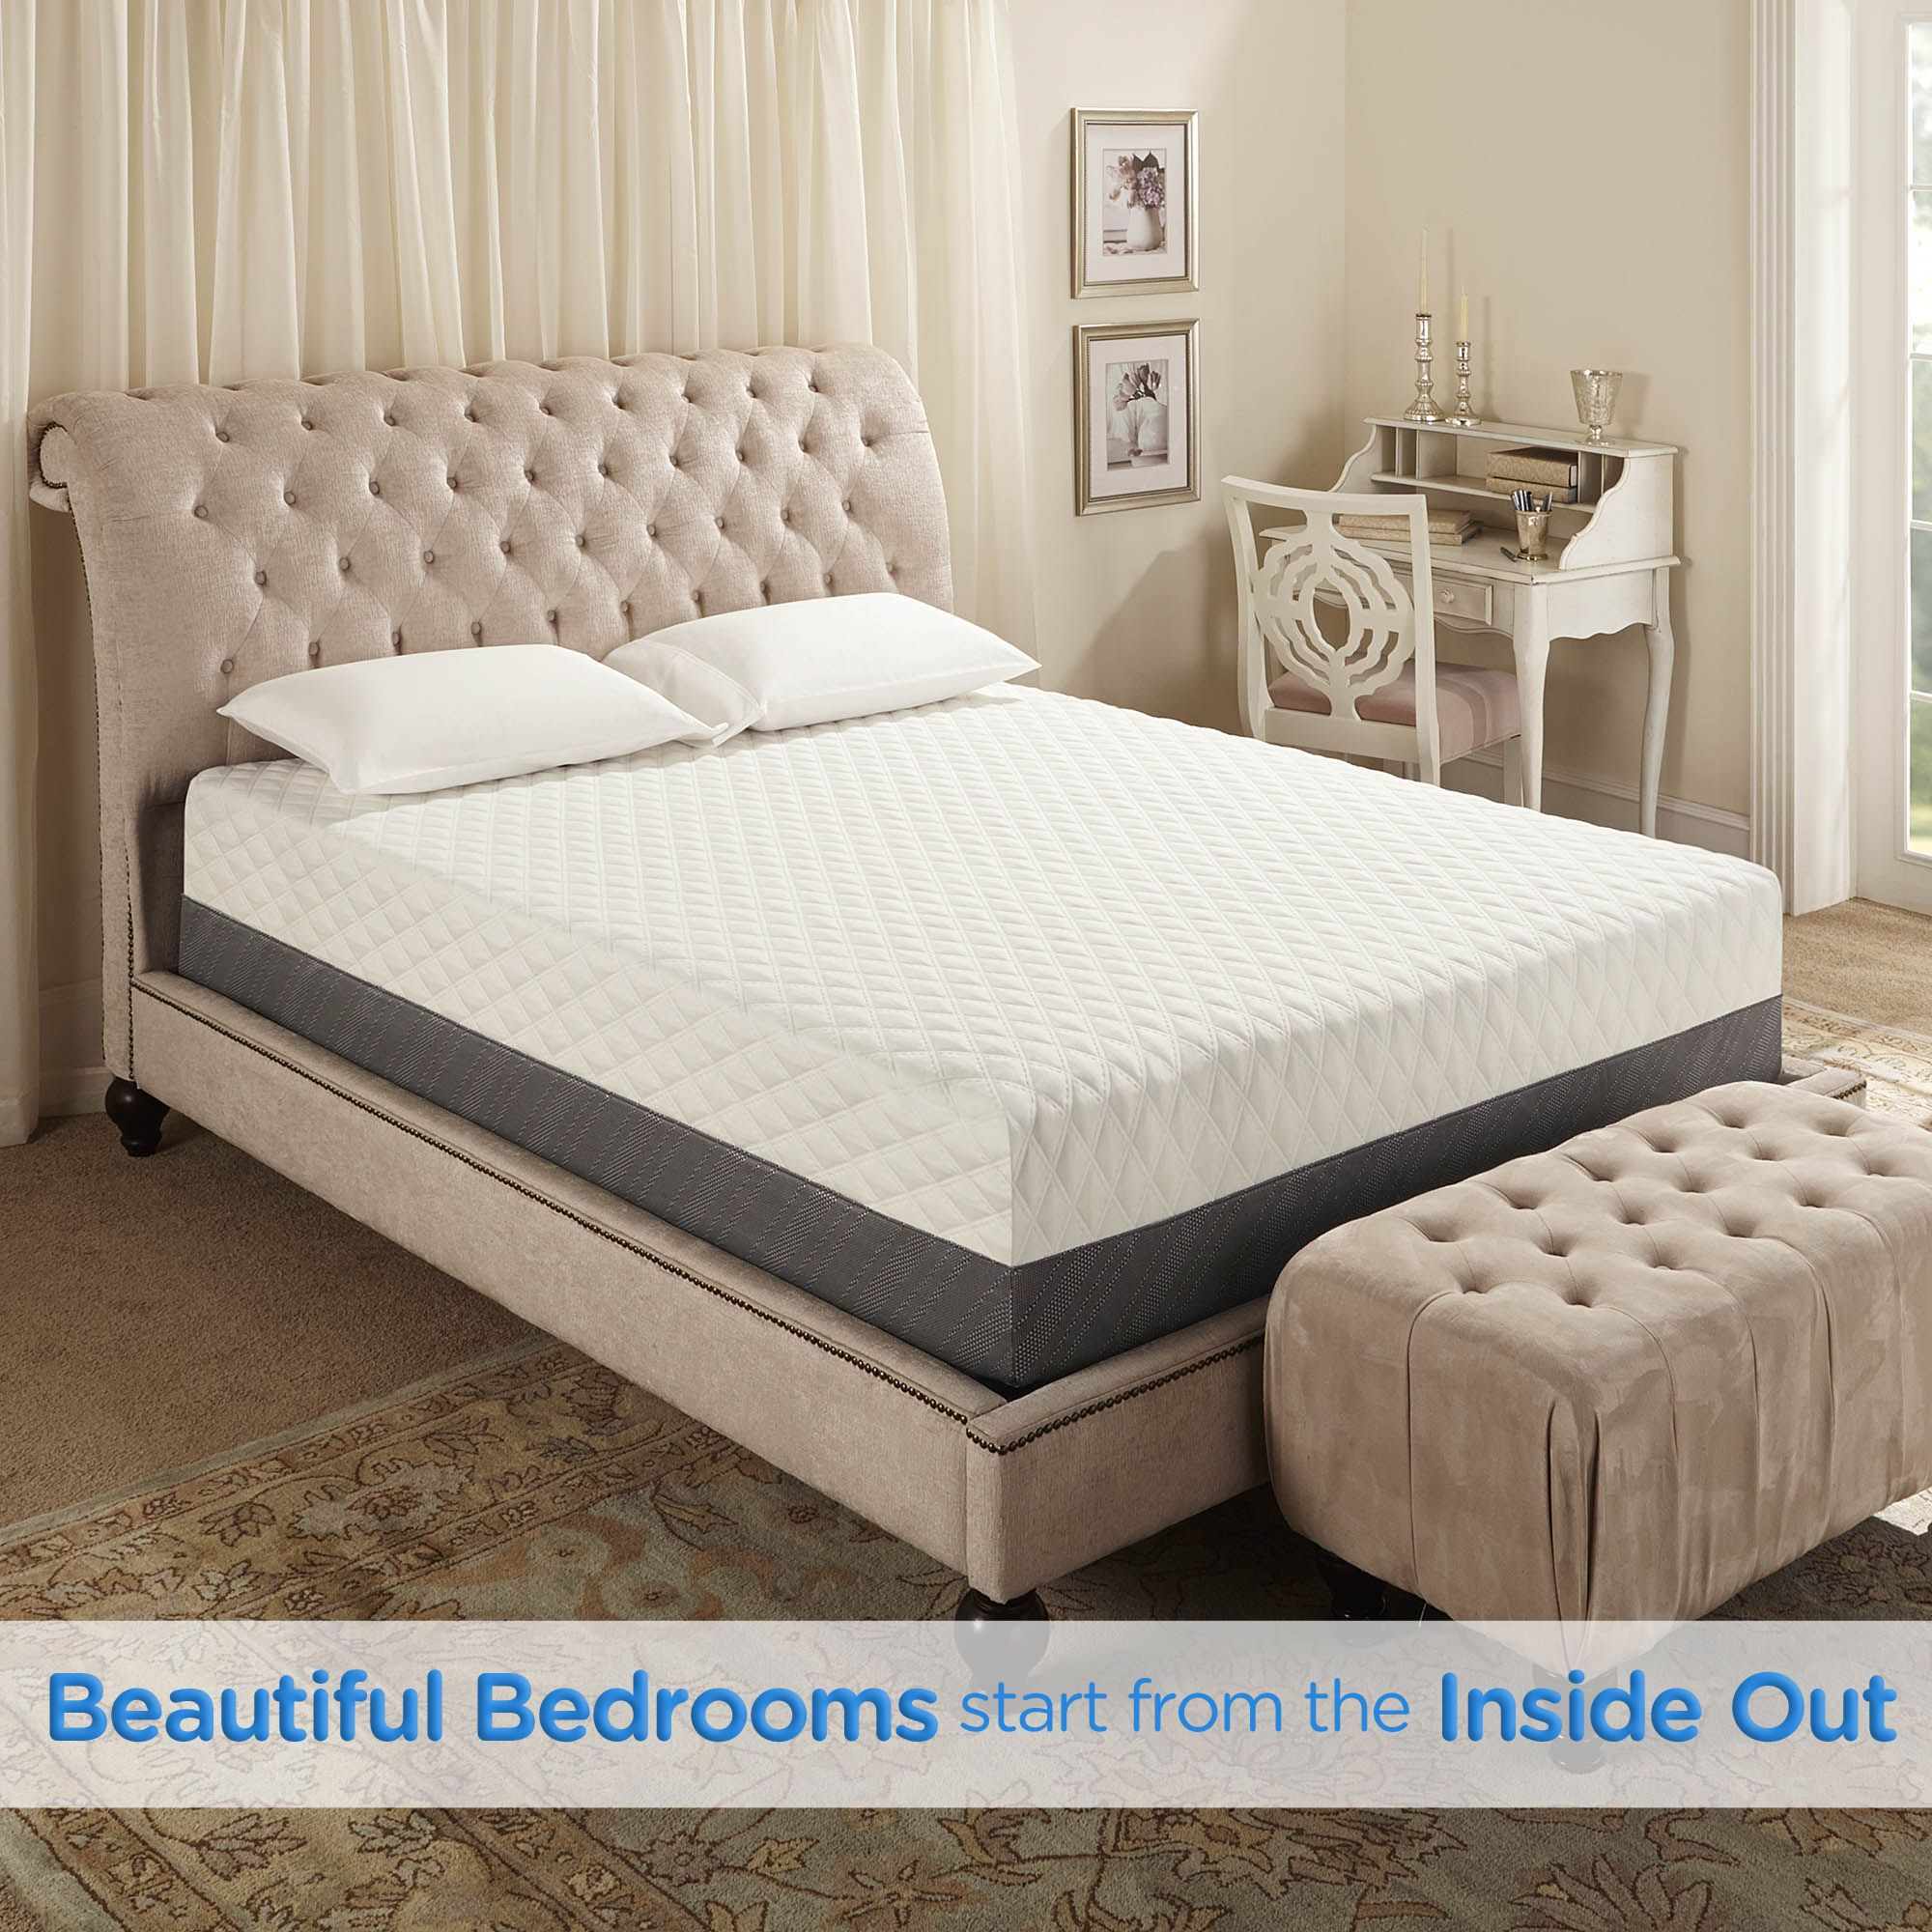 A Beautiful Bedroom Starts From The Inside Out A Comfortable Memory Foam Mattress Serves As With Images Mattress Queen Memory Foam Mattress Queen Mattress Size